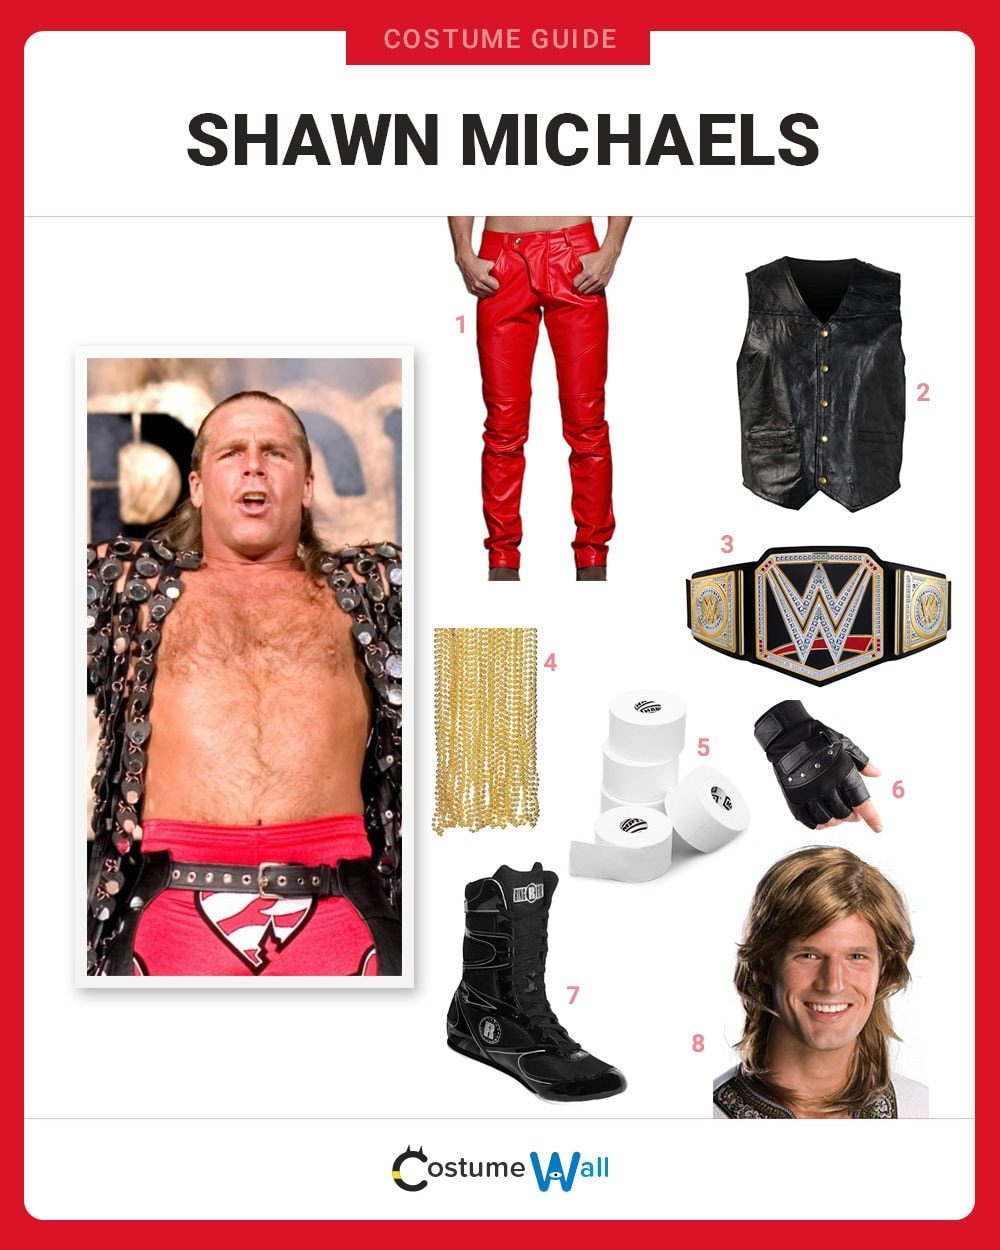 Shawn Michaels Costume Guide